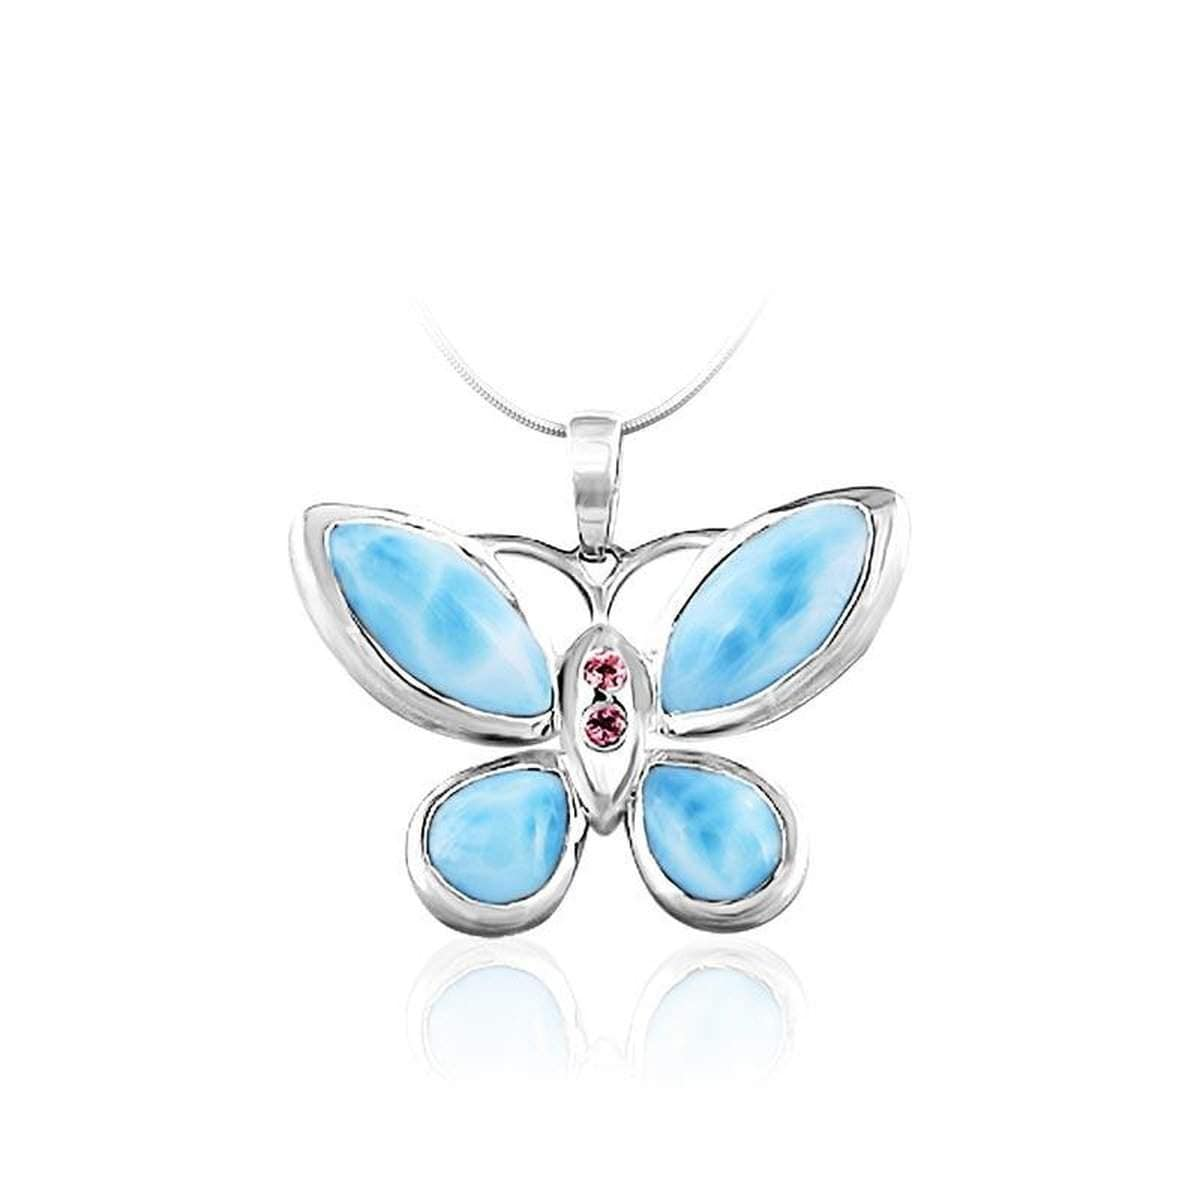 Butterfly Pink Sapphire Necklace - Nbutt01-ch-Marahlago Larimar-Renee Taylor Gallery